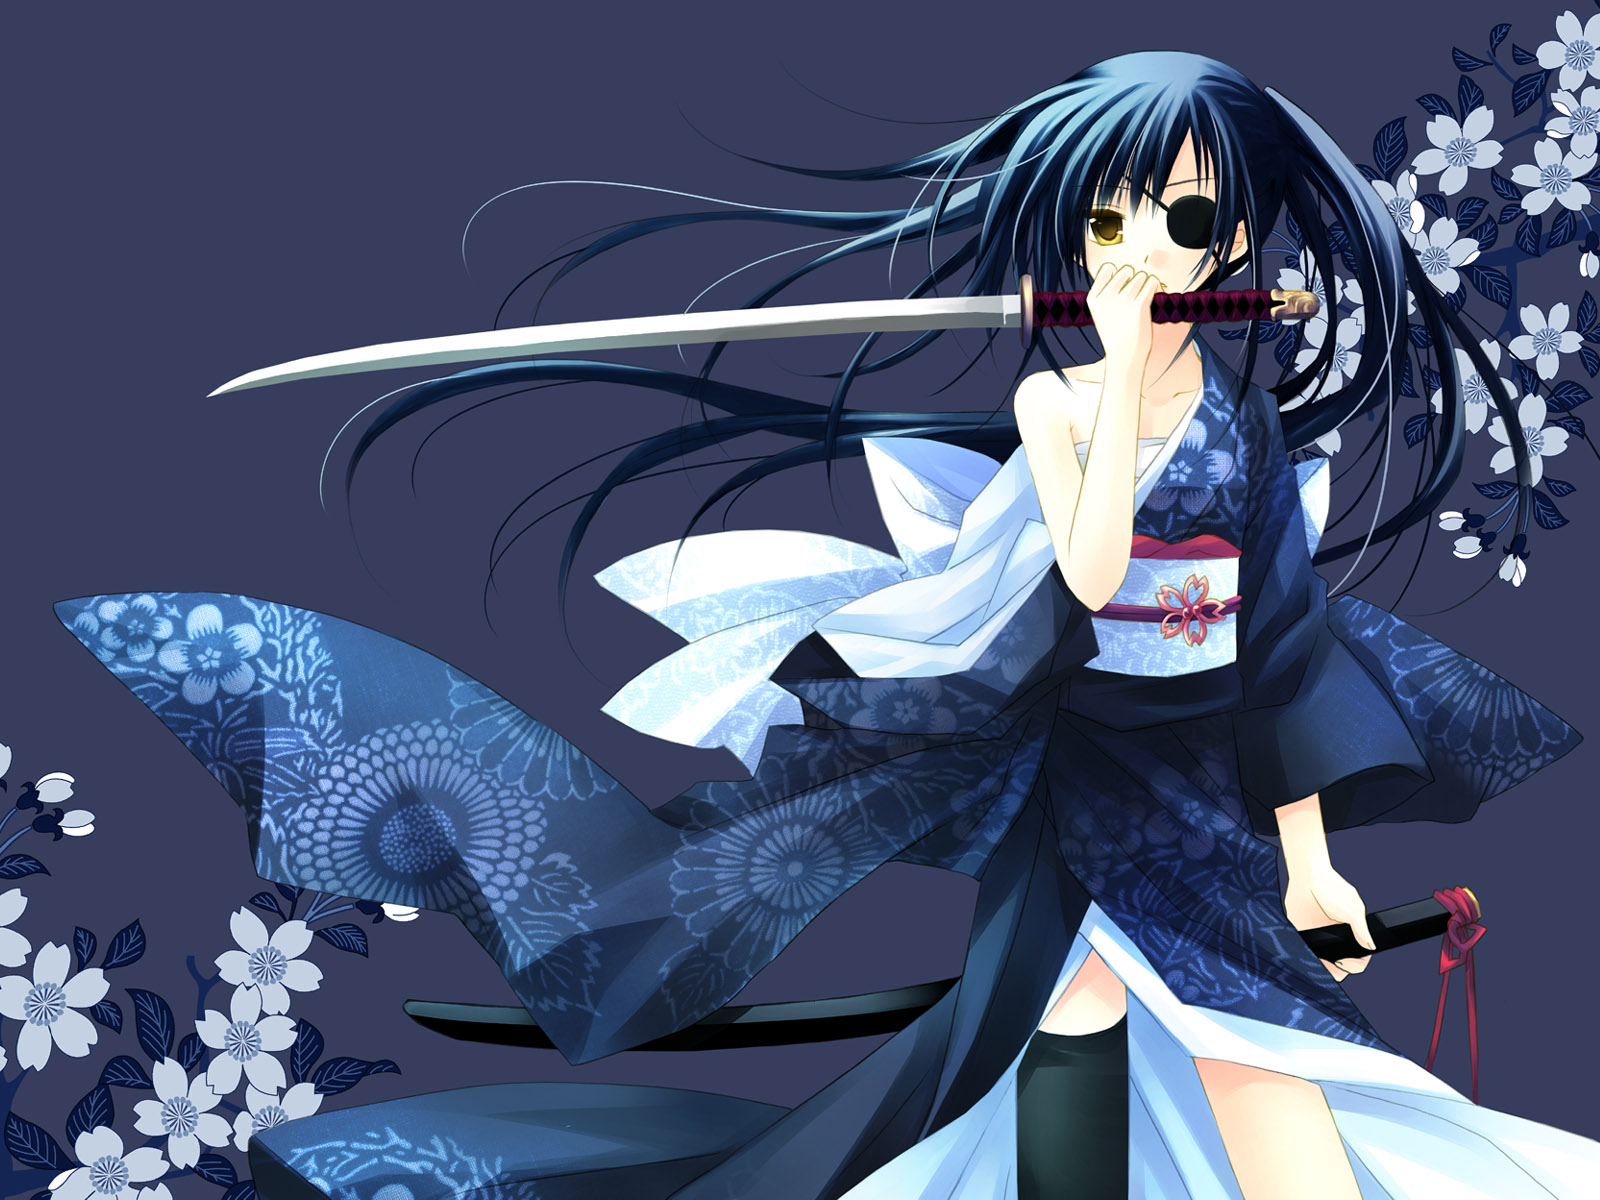 Misao hd wallpapers backgrounds wallpaper abyss - Frauen Wallpaper And Hintergrund 1600x1200 Id 48284